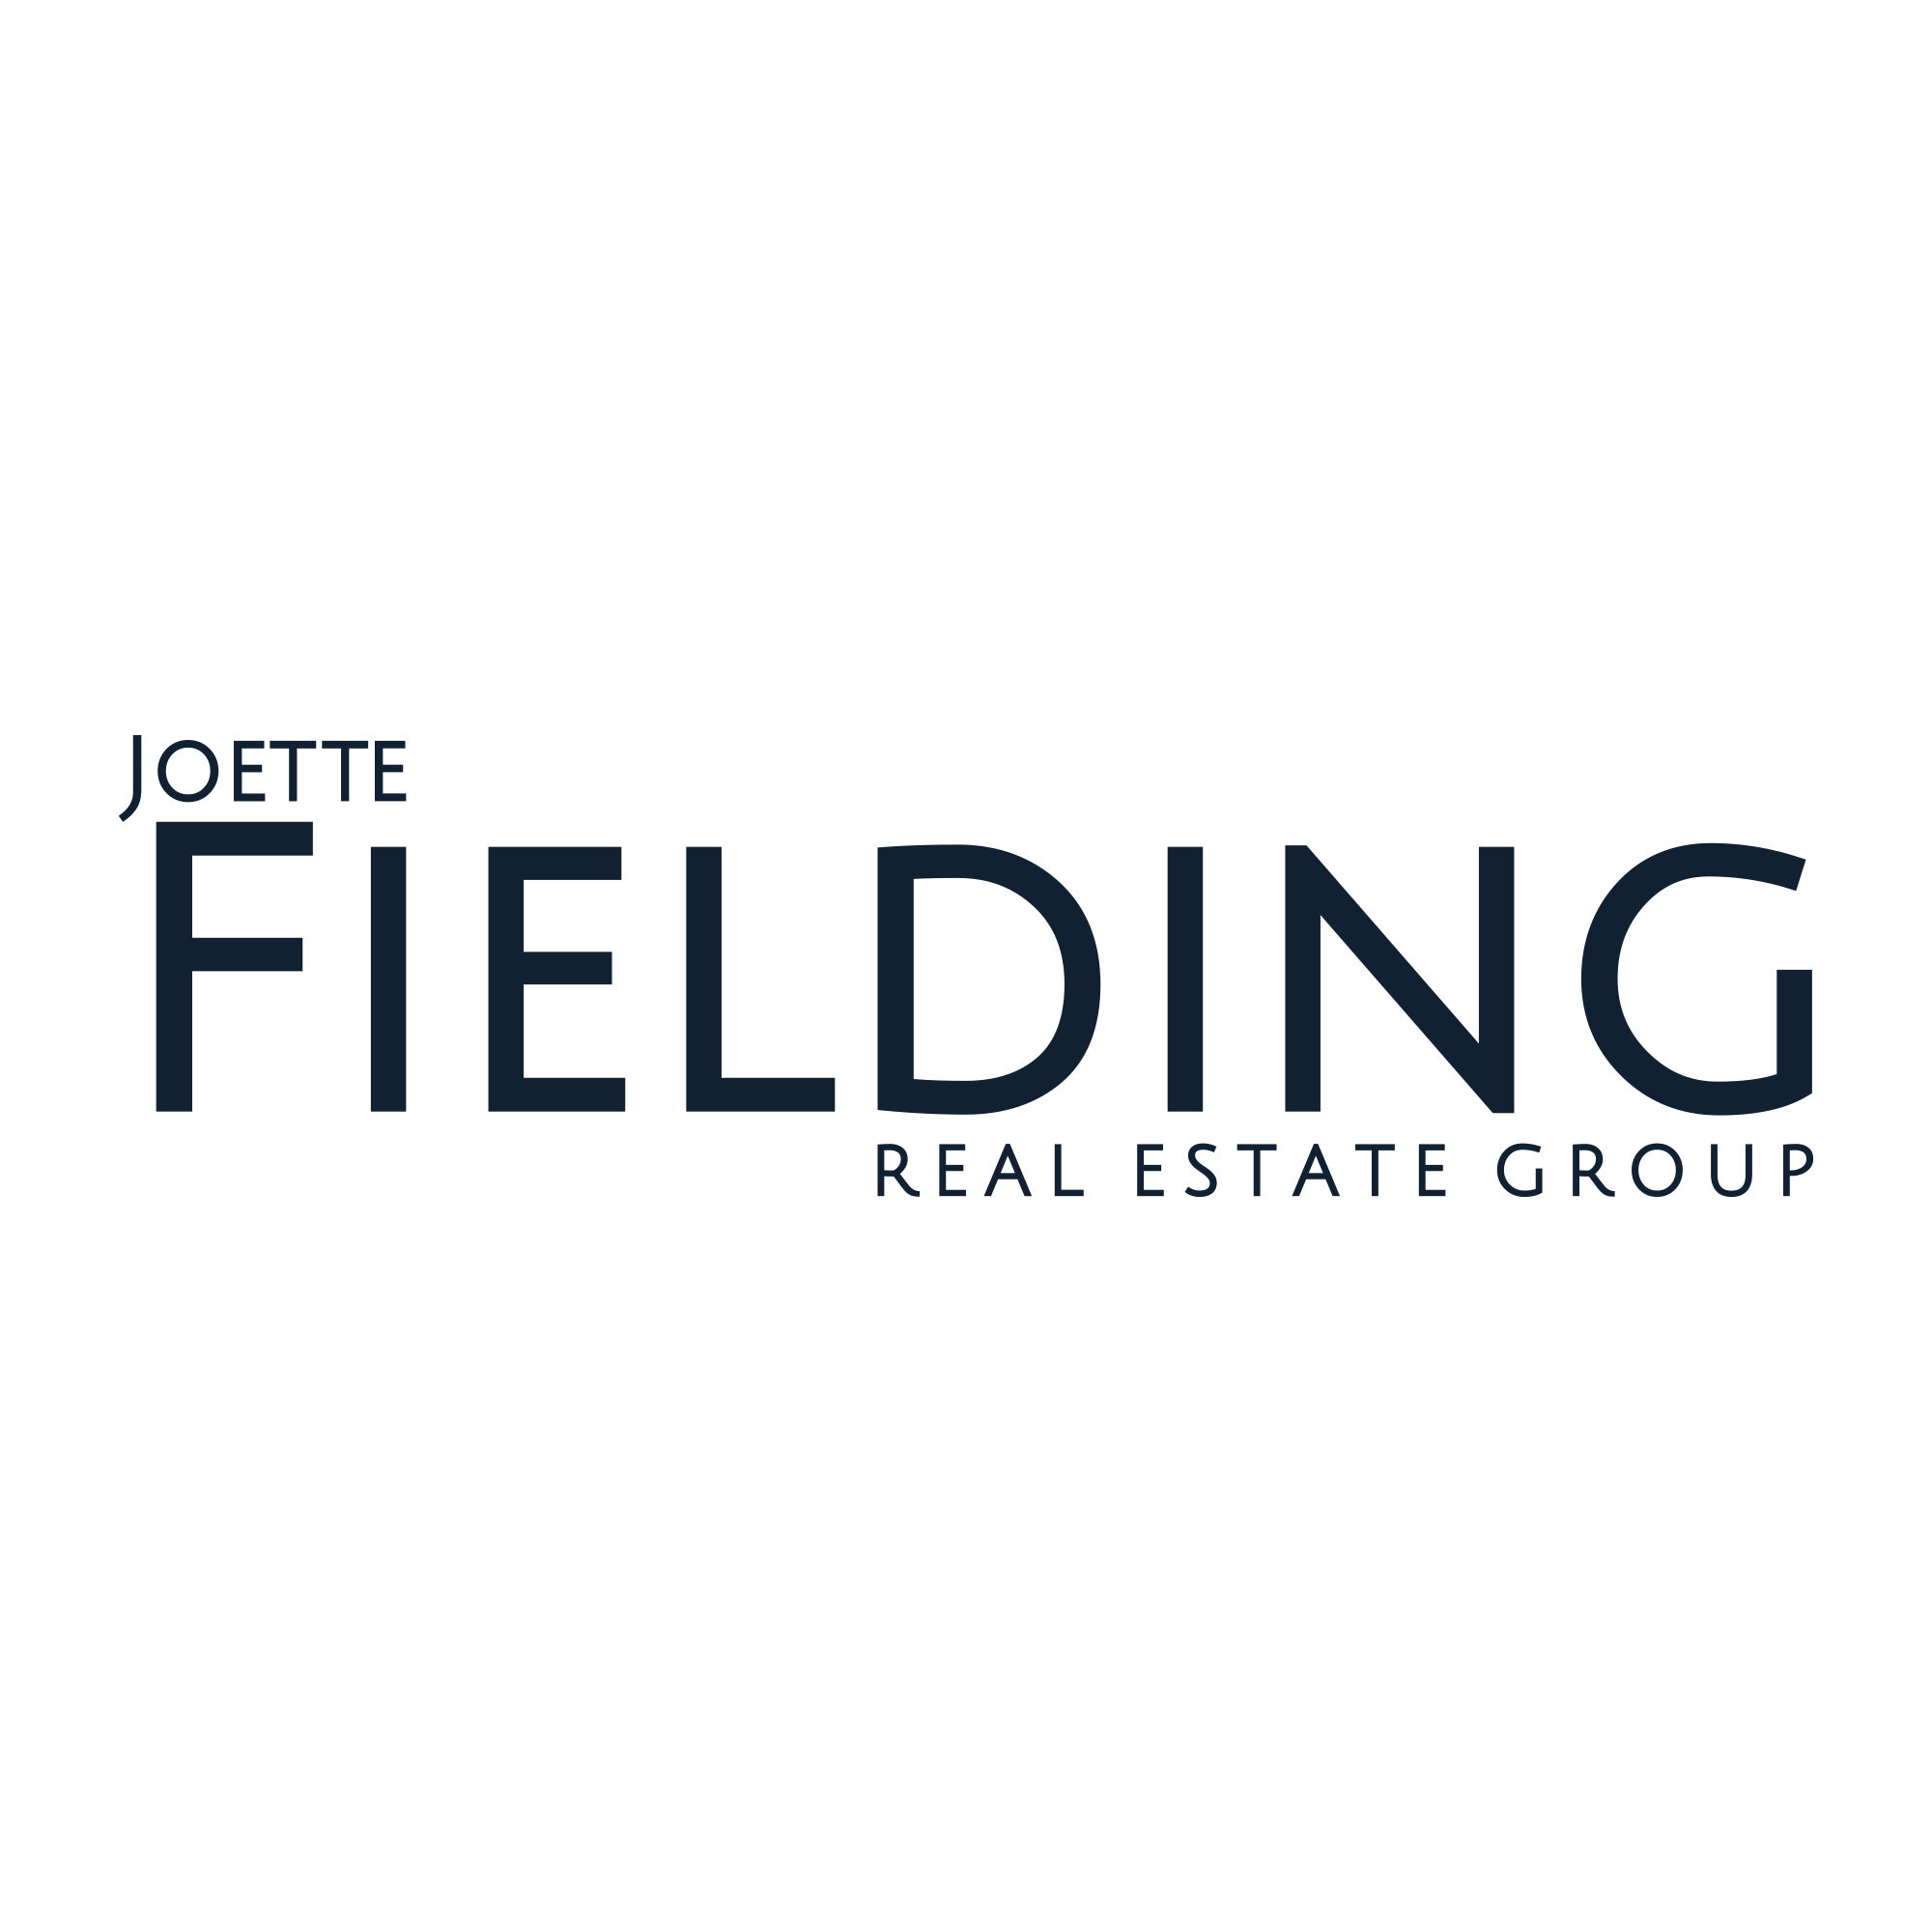 Joette Fielding Real Estate Group Logo